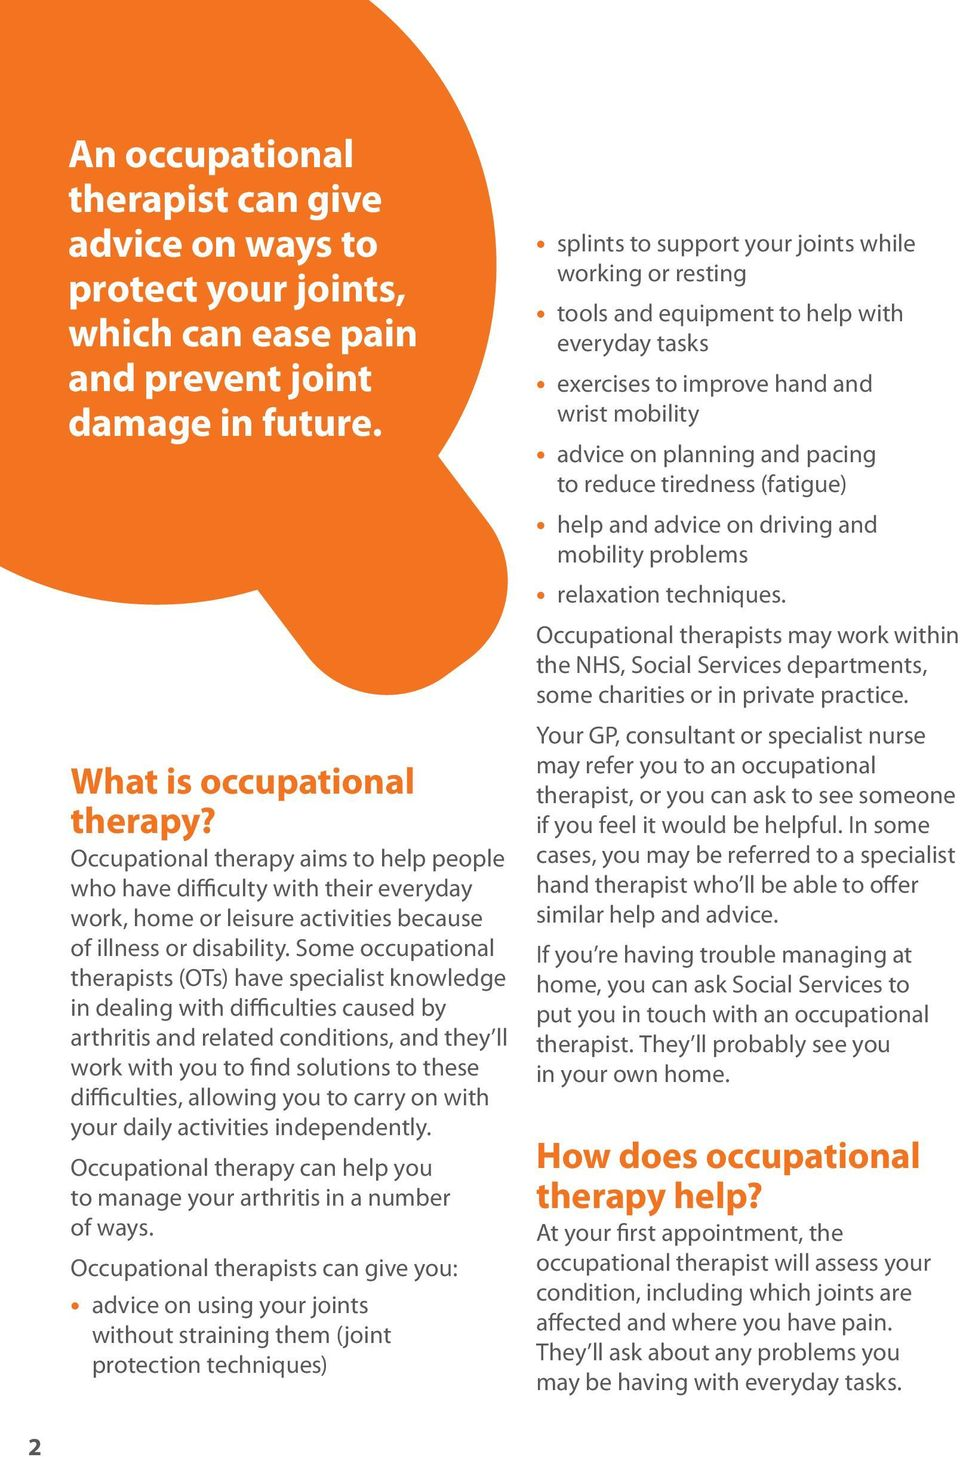 Some occupational therapists (OTs) have specialist knowledge in dealing with difficulties caused by arthritis and related conditions, and they ll work with you to find solutions to these